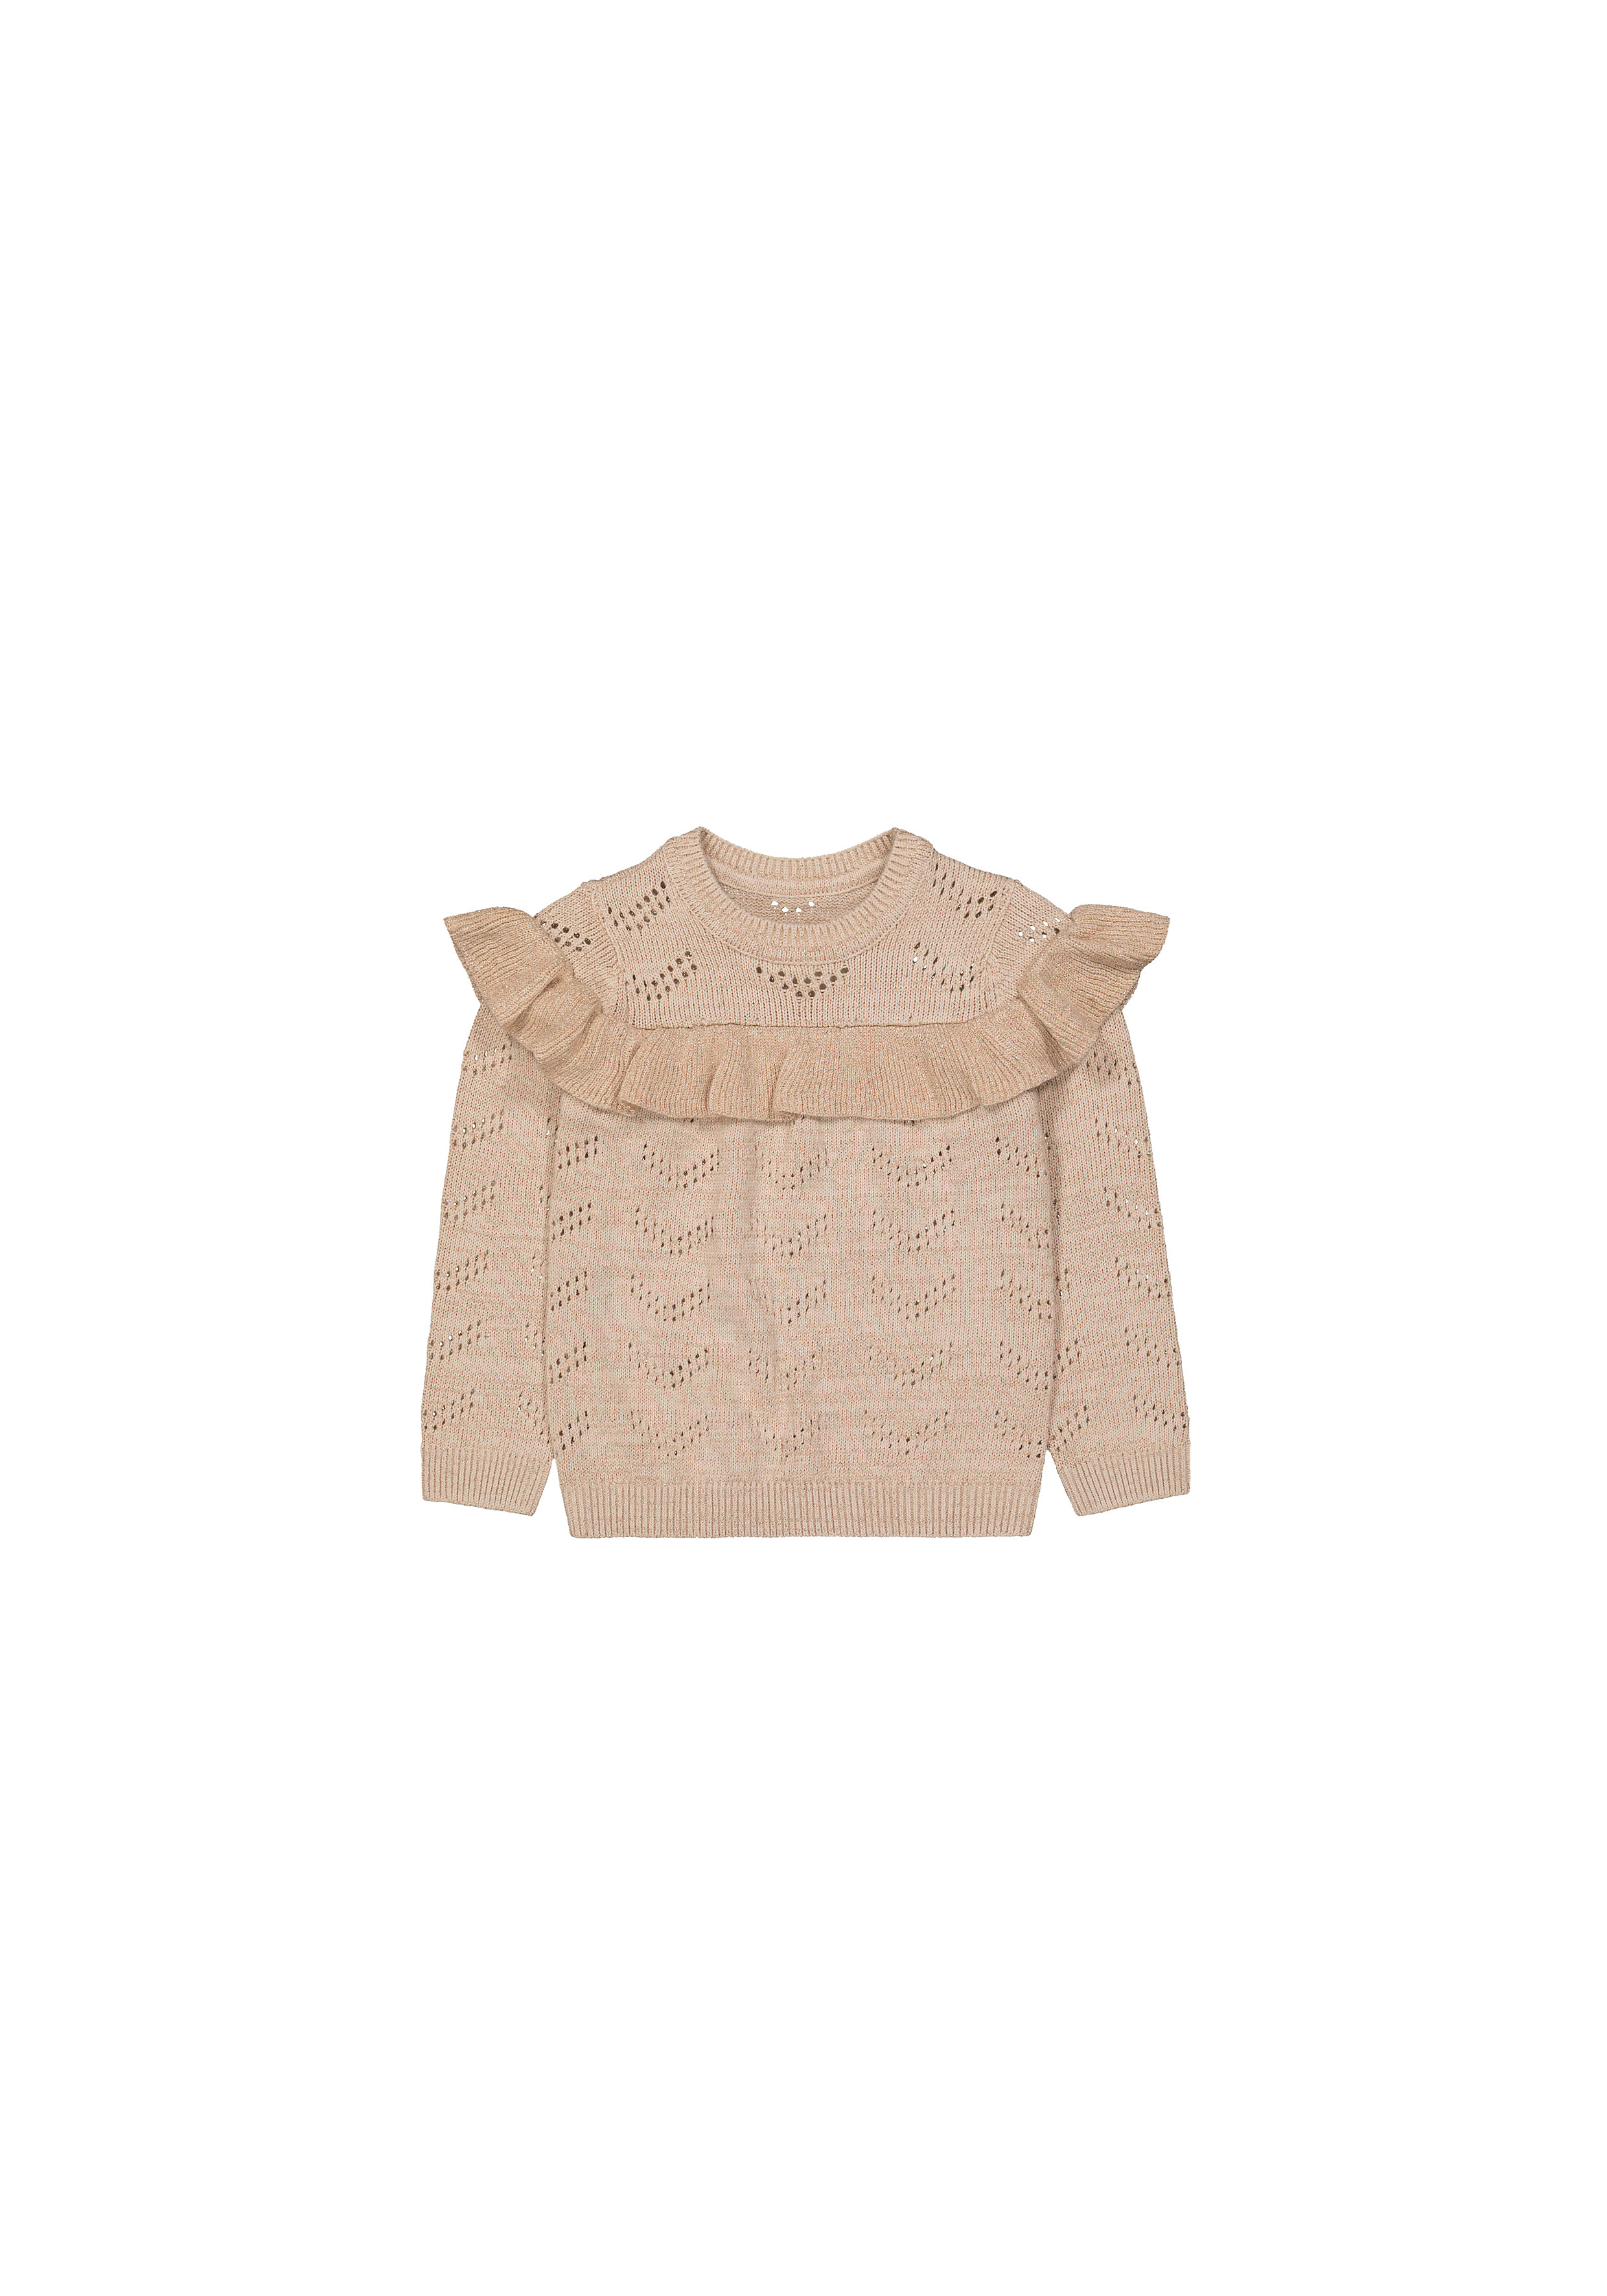 Mothercare | Girls Full Sleeves Sweaters  - Cream